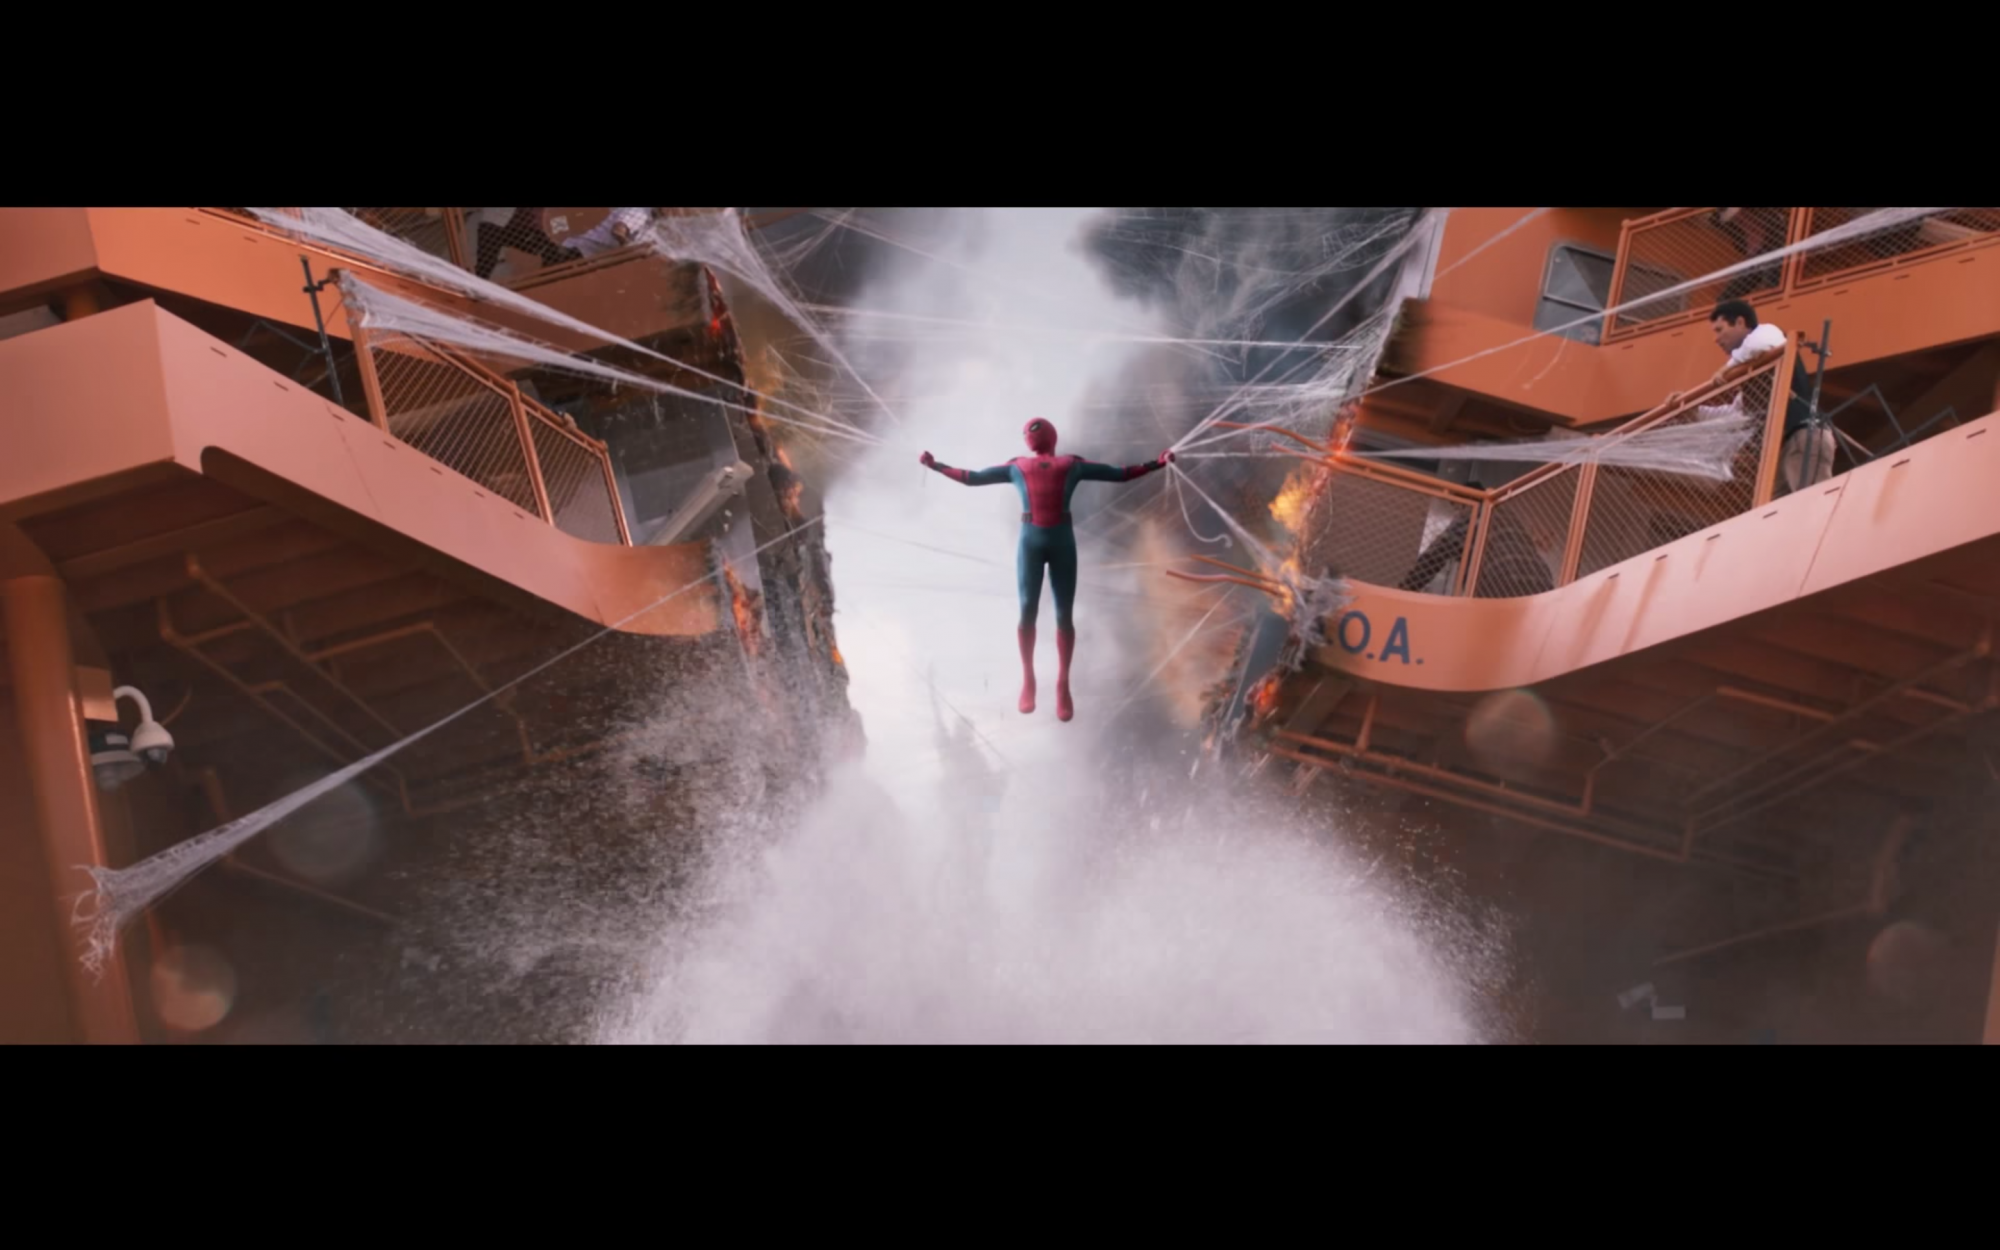 Spider-Man Homecoming trailer screengrab